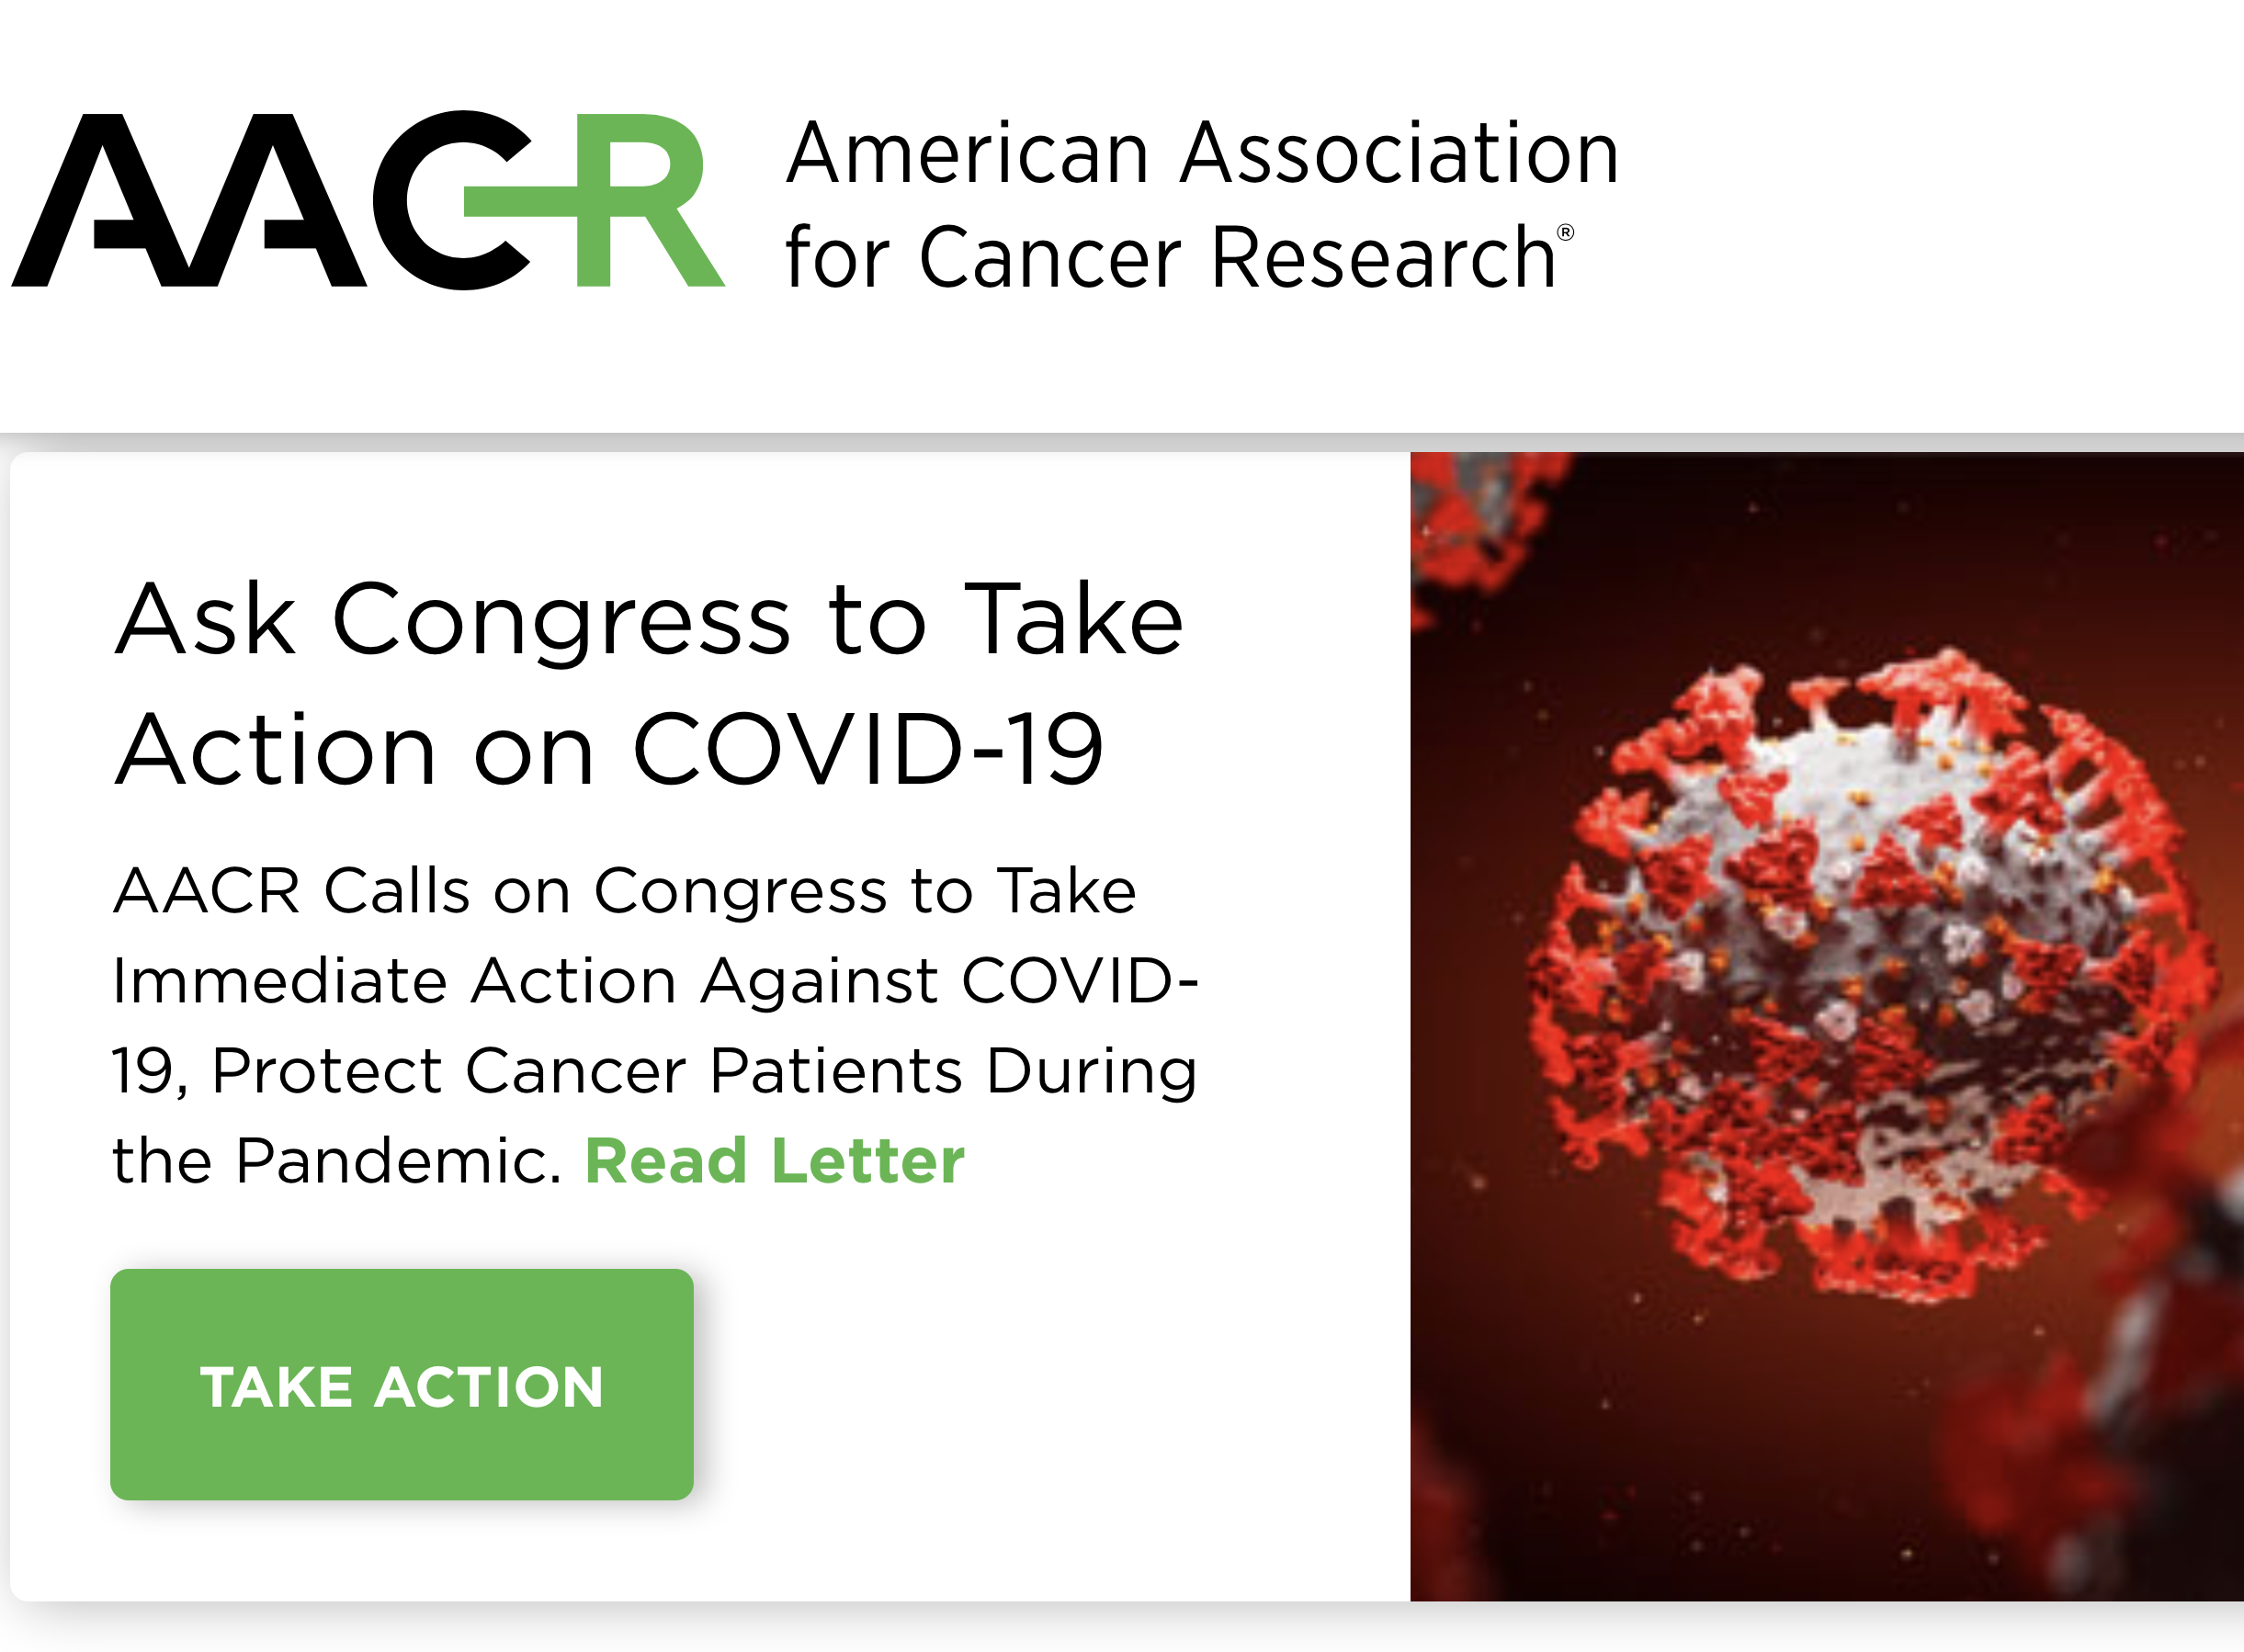 AACR calls on US Congress to take quick action against COVID-19